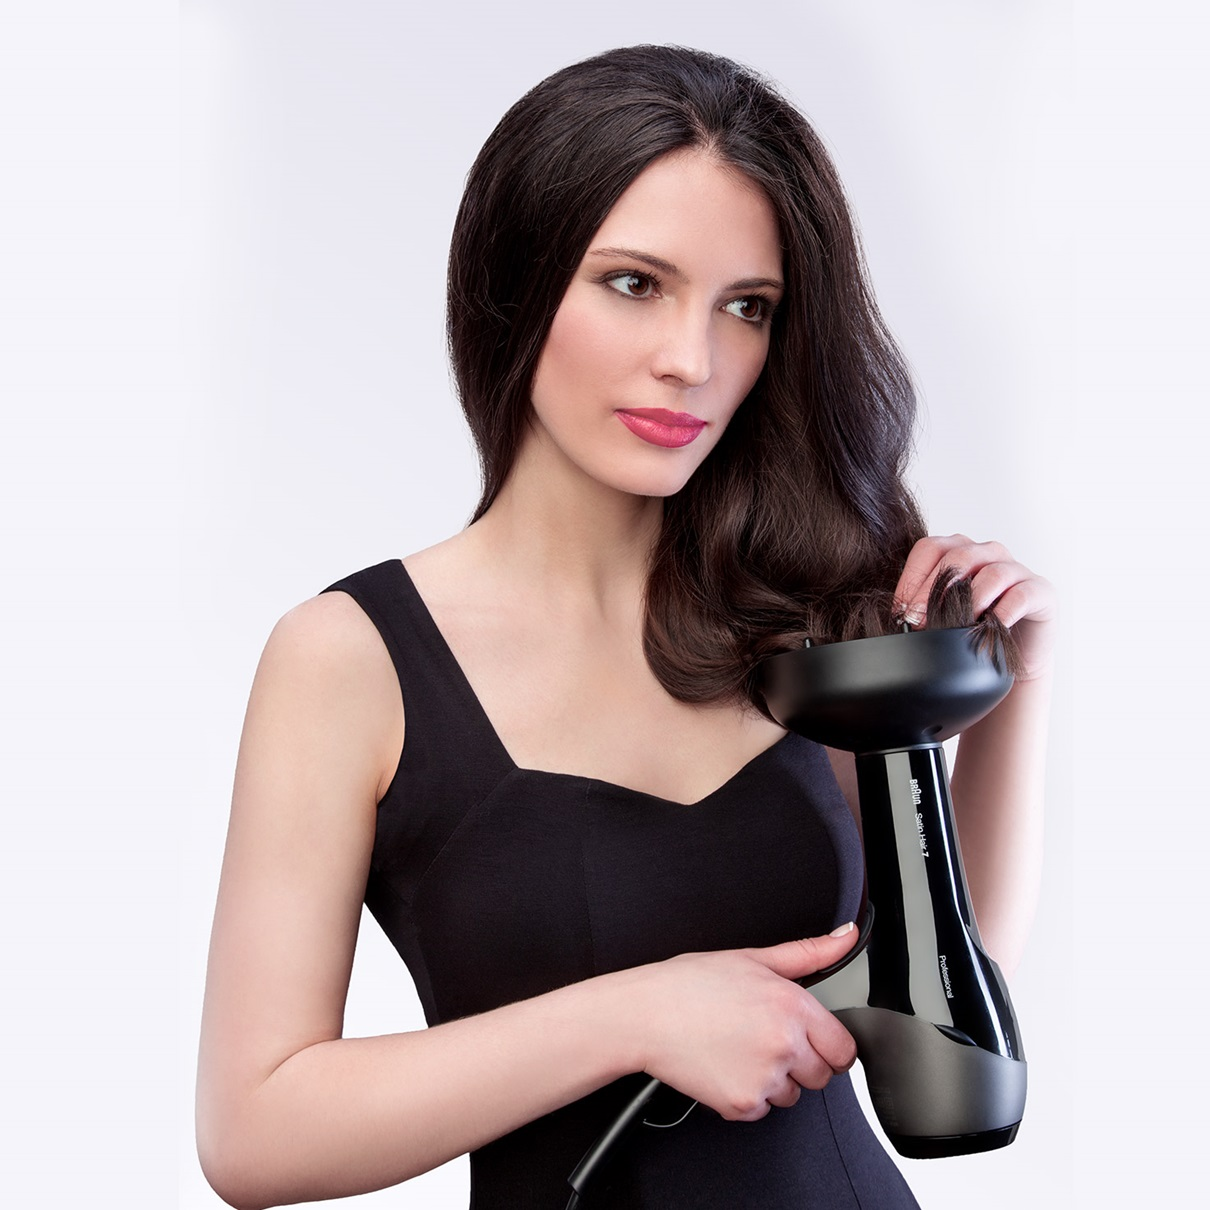 Braun Satin Hair 7 HD785 professional SensoDryer with IONTEC and diffuser - in use